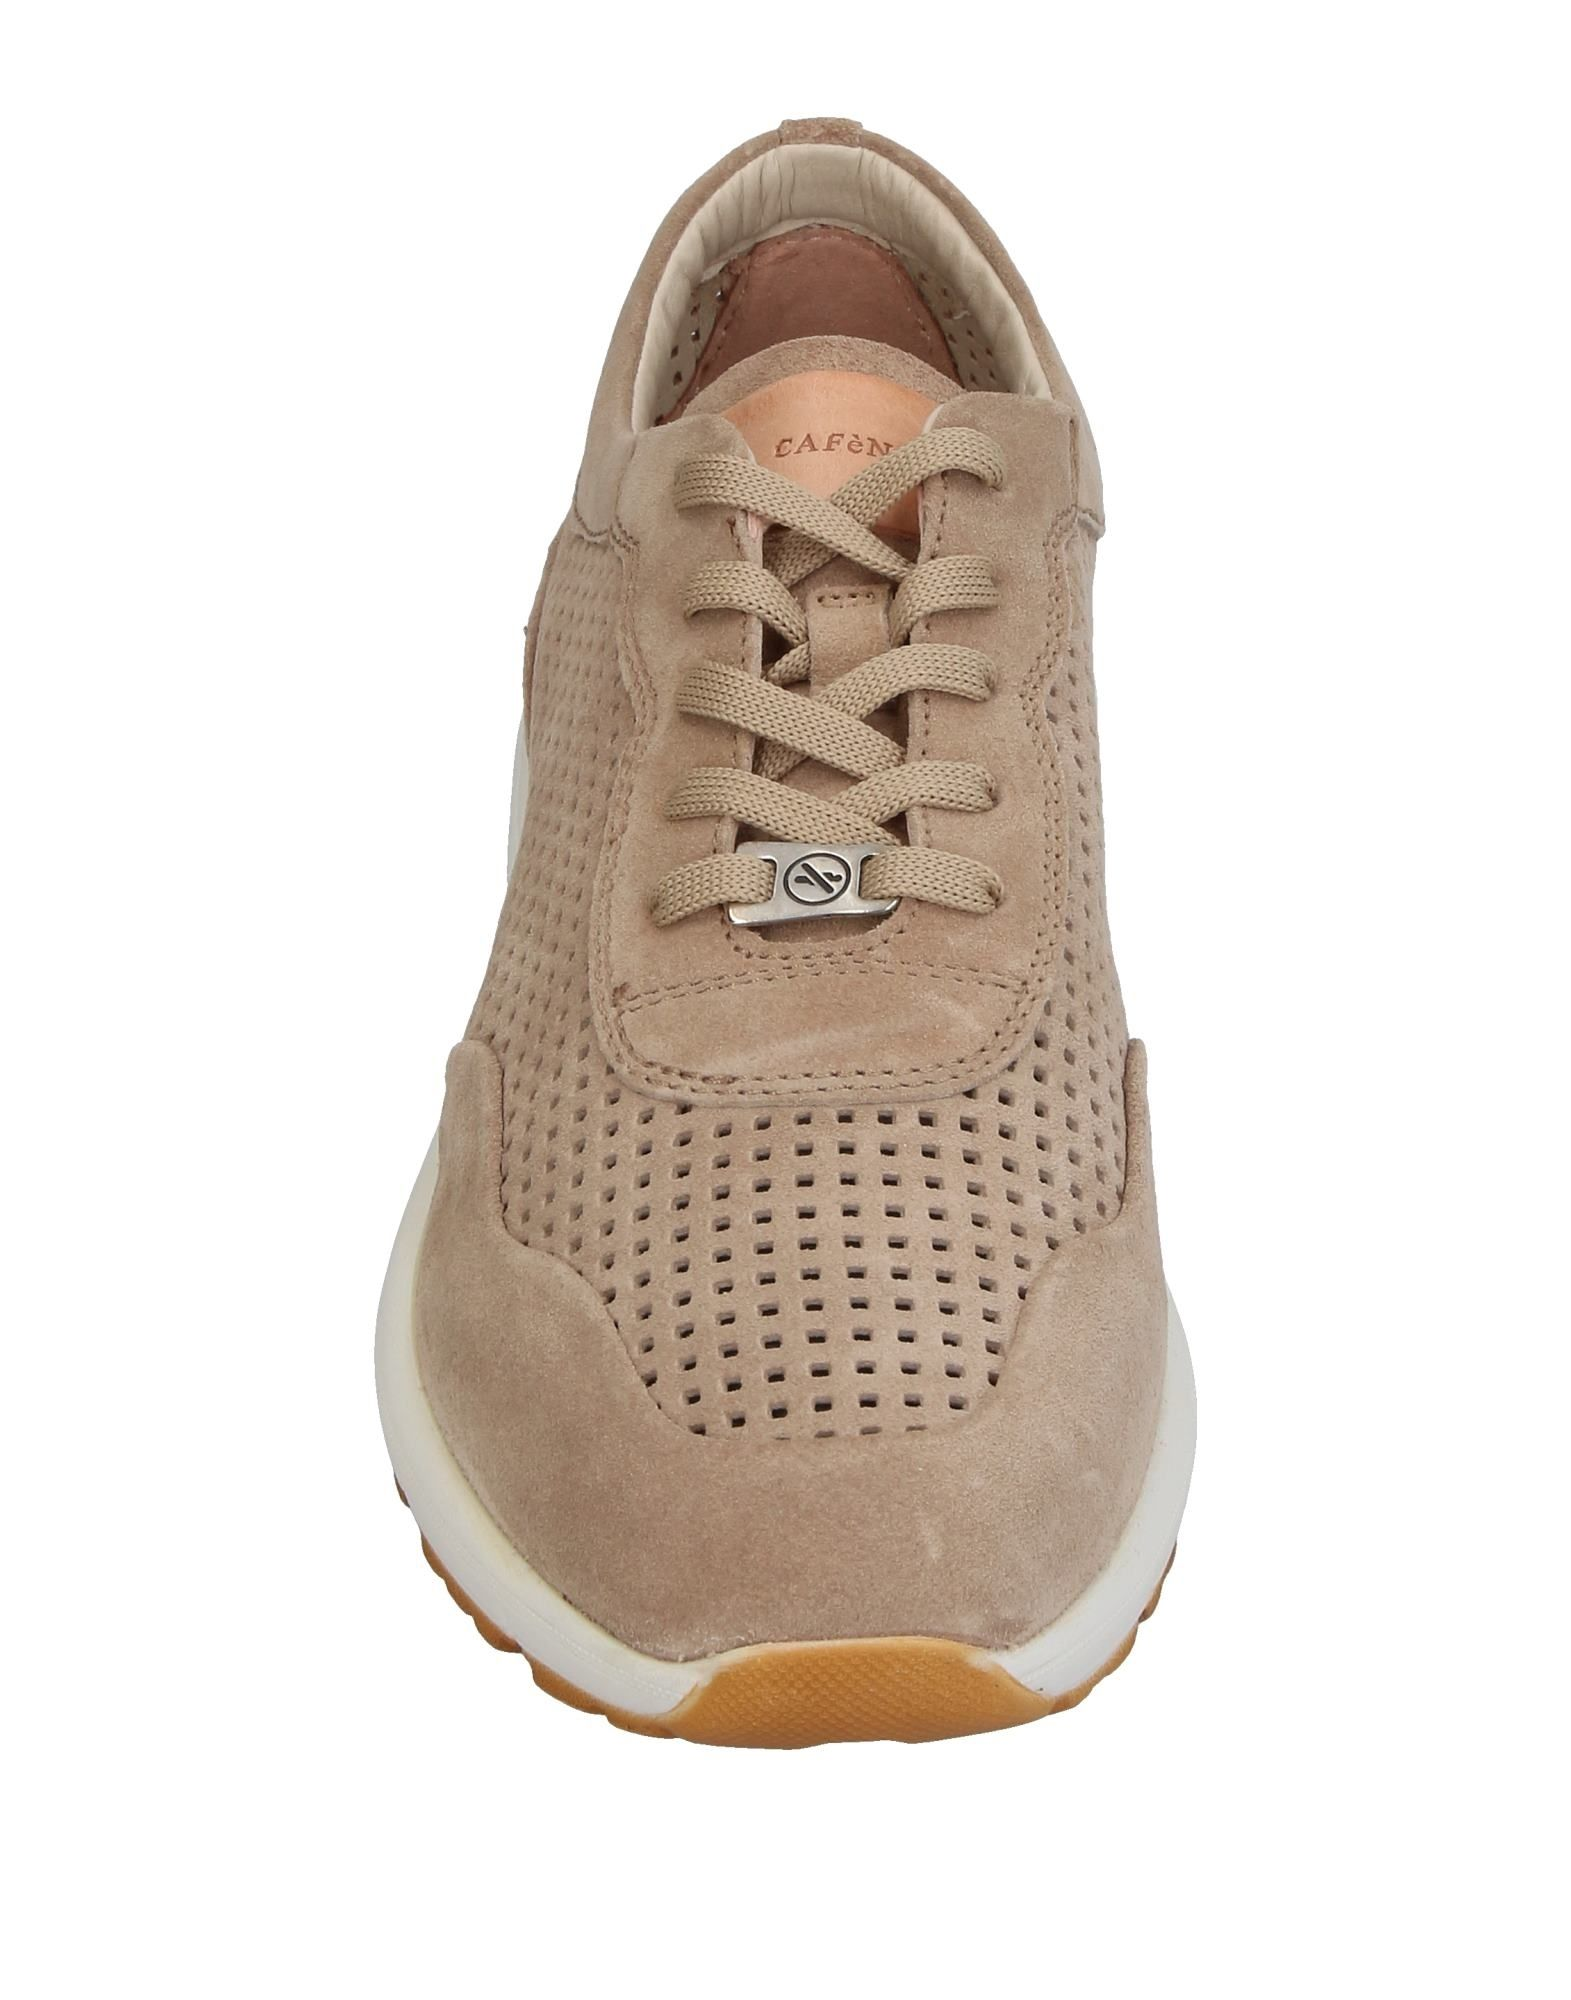 Cafènoir Sneakers Sneakers Sneakers - Men Cafènoir Sneakers online on  Canada - 11377532ED 33c82e